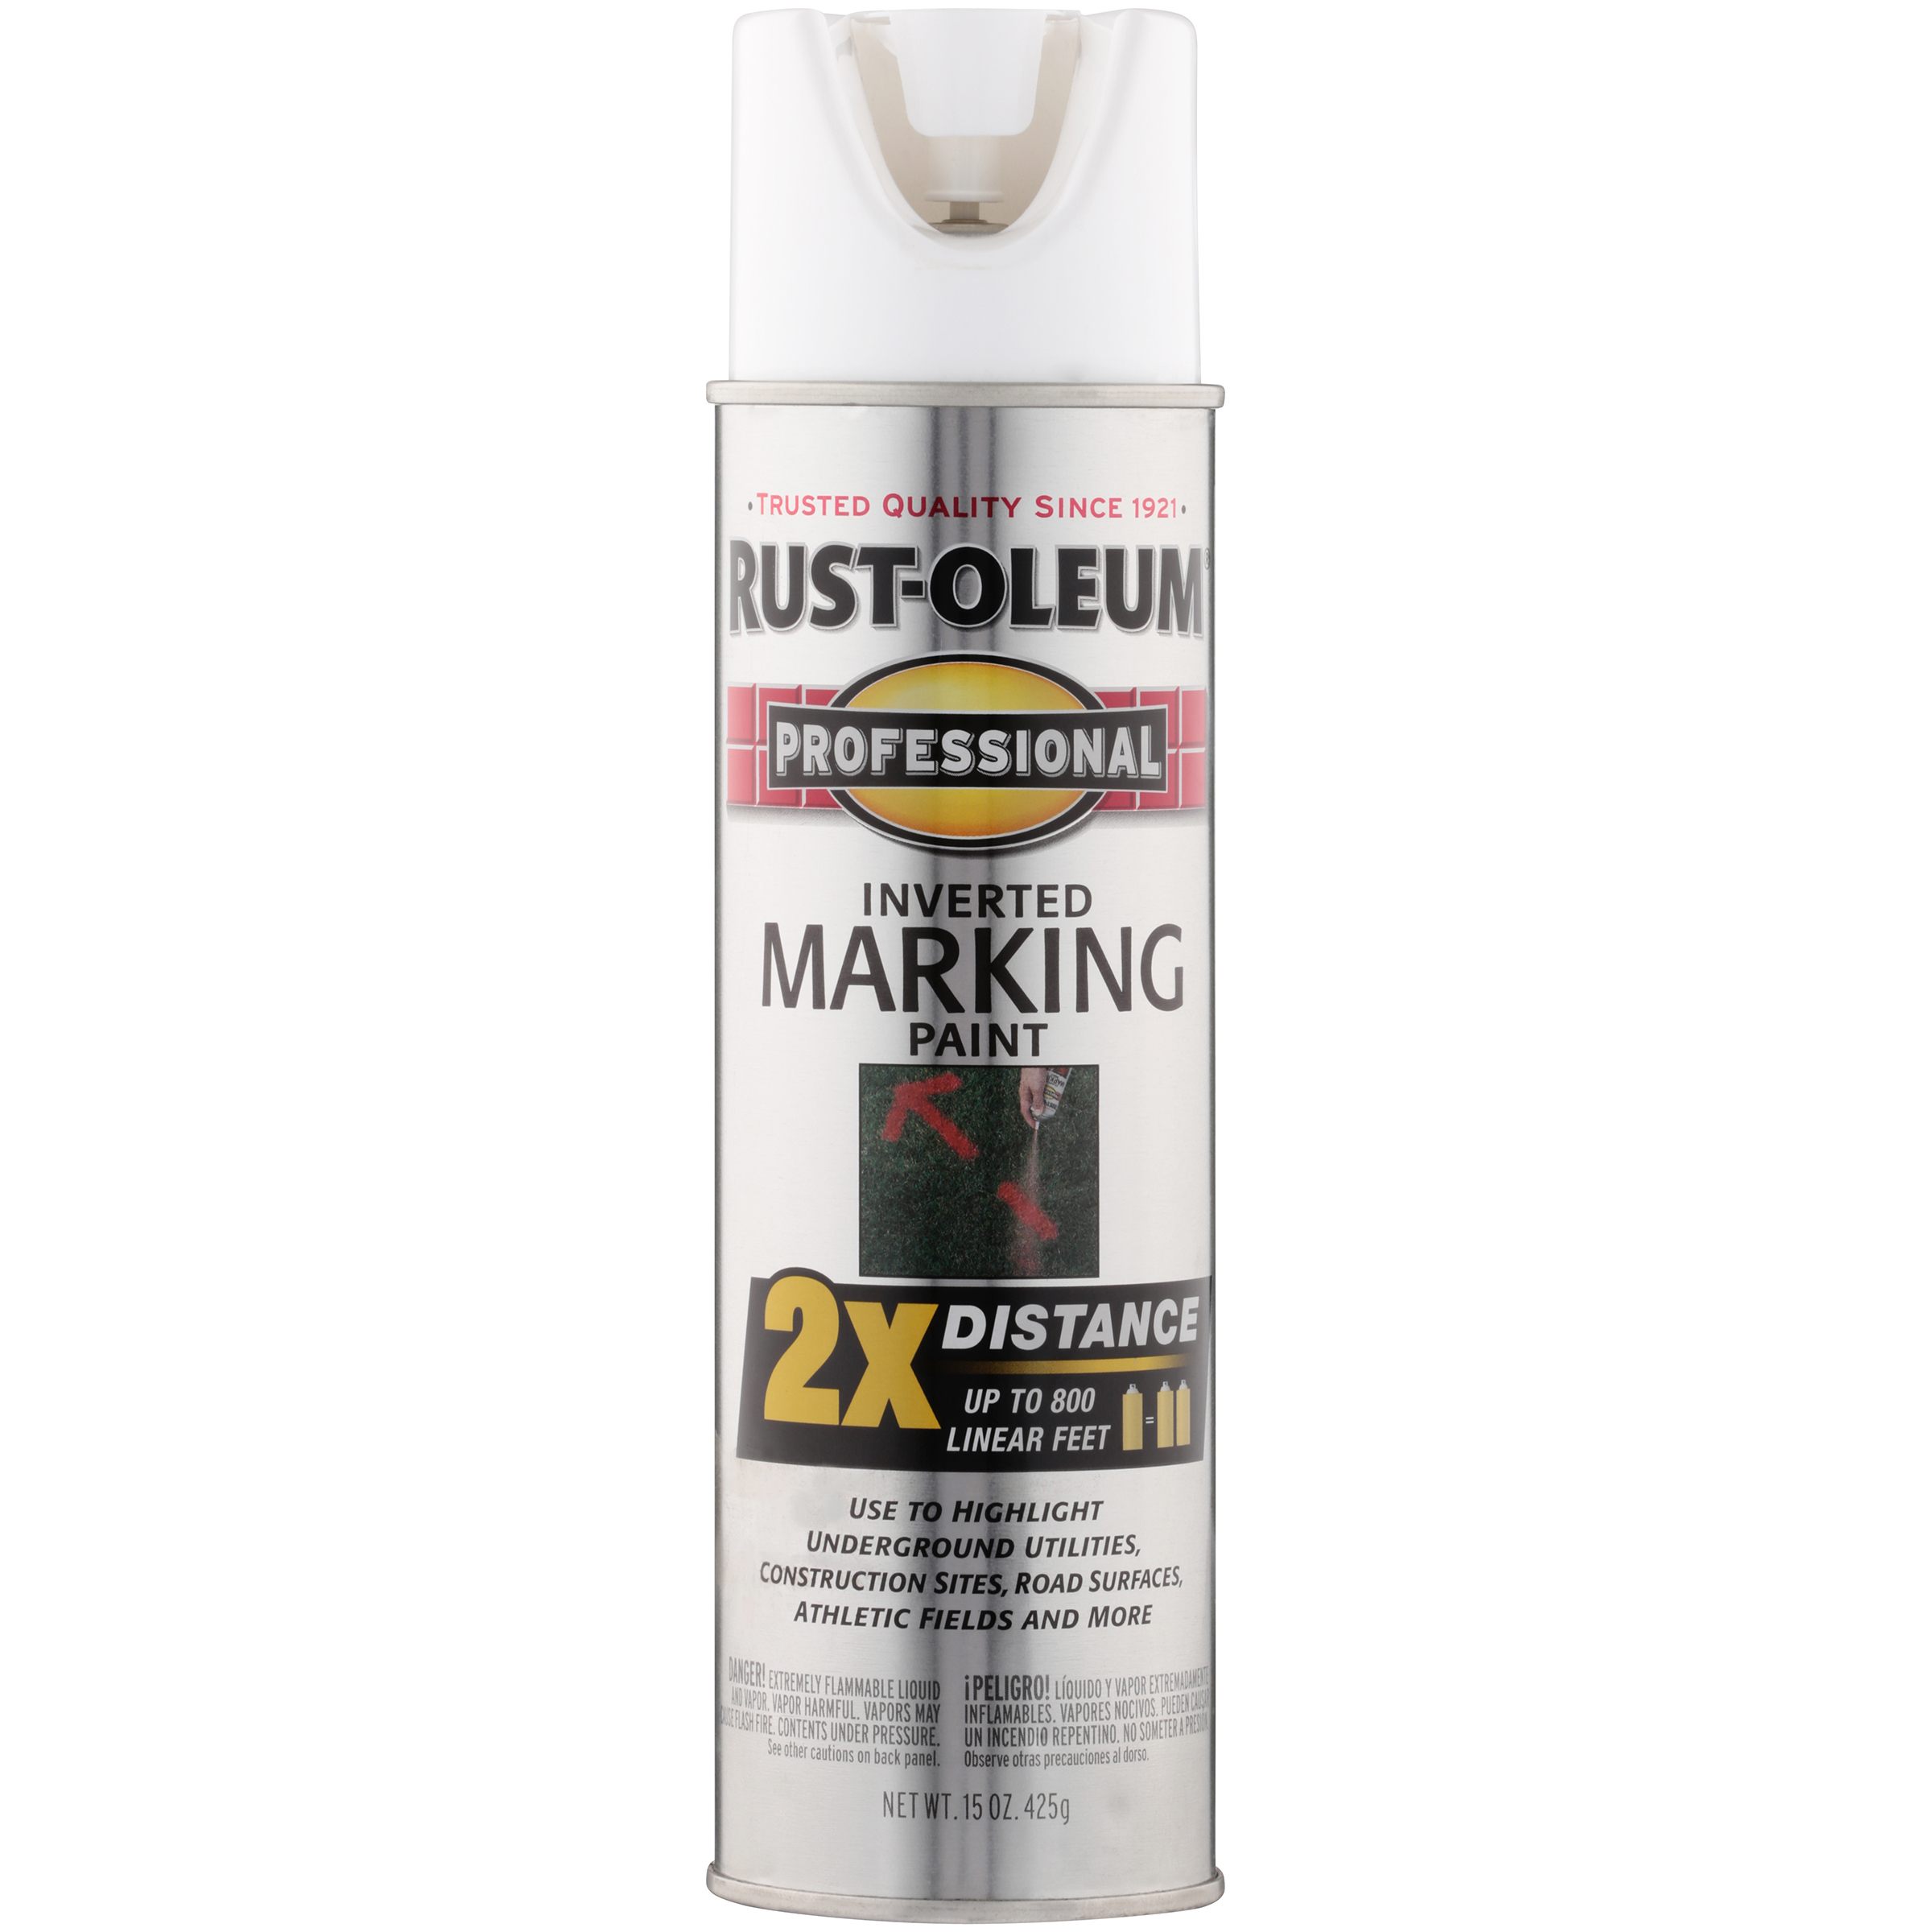 (3 Pack) Rust-Oleum Professional White Inverted Marking Spray Paint, 15 oz